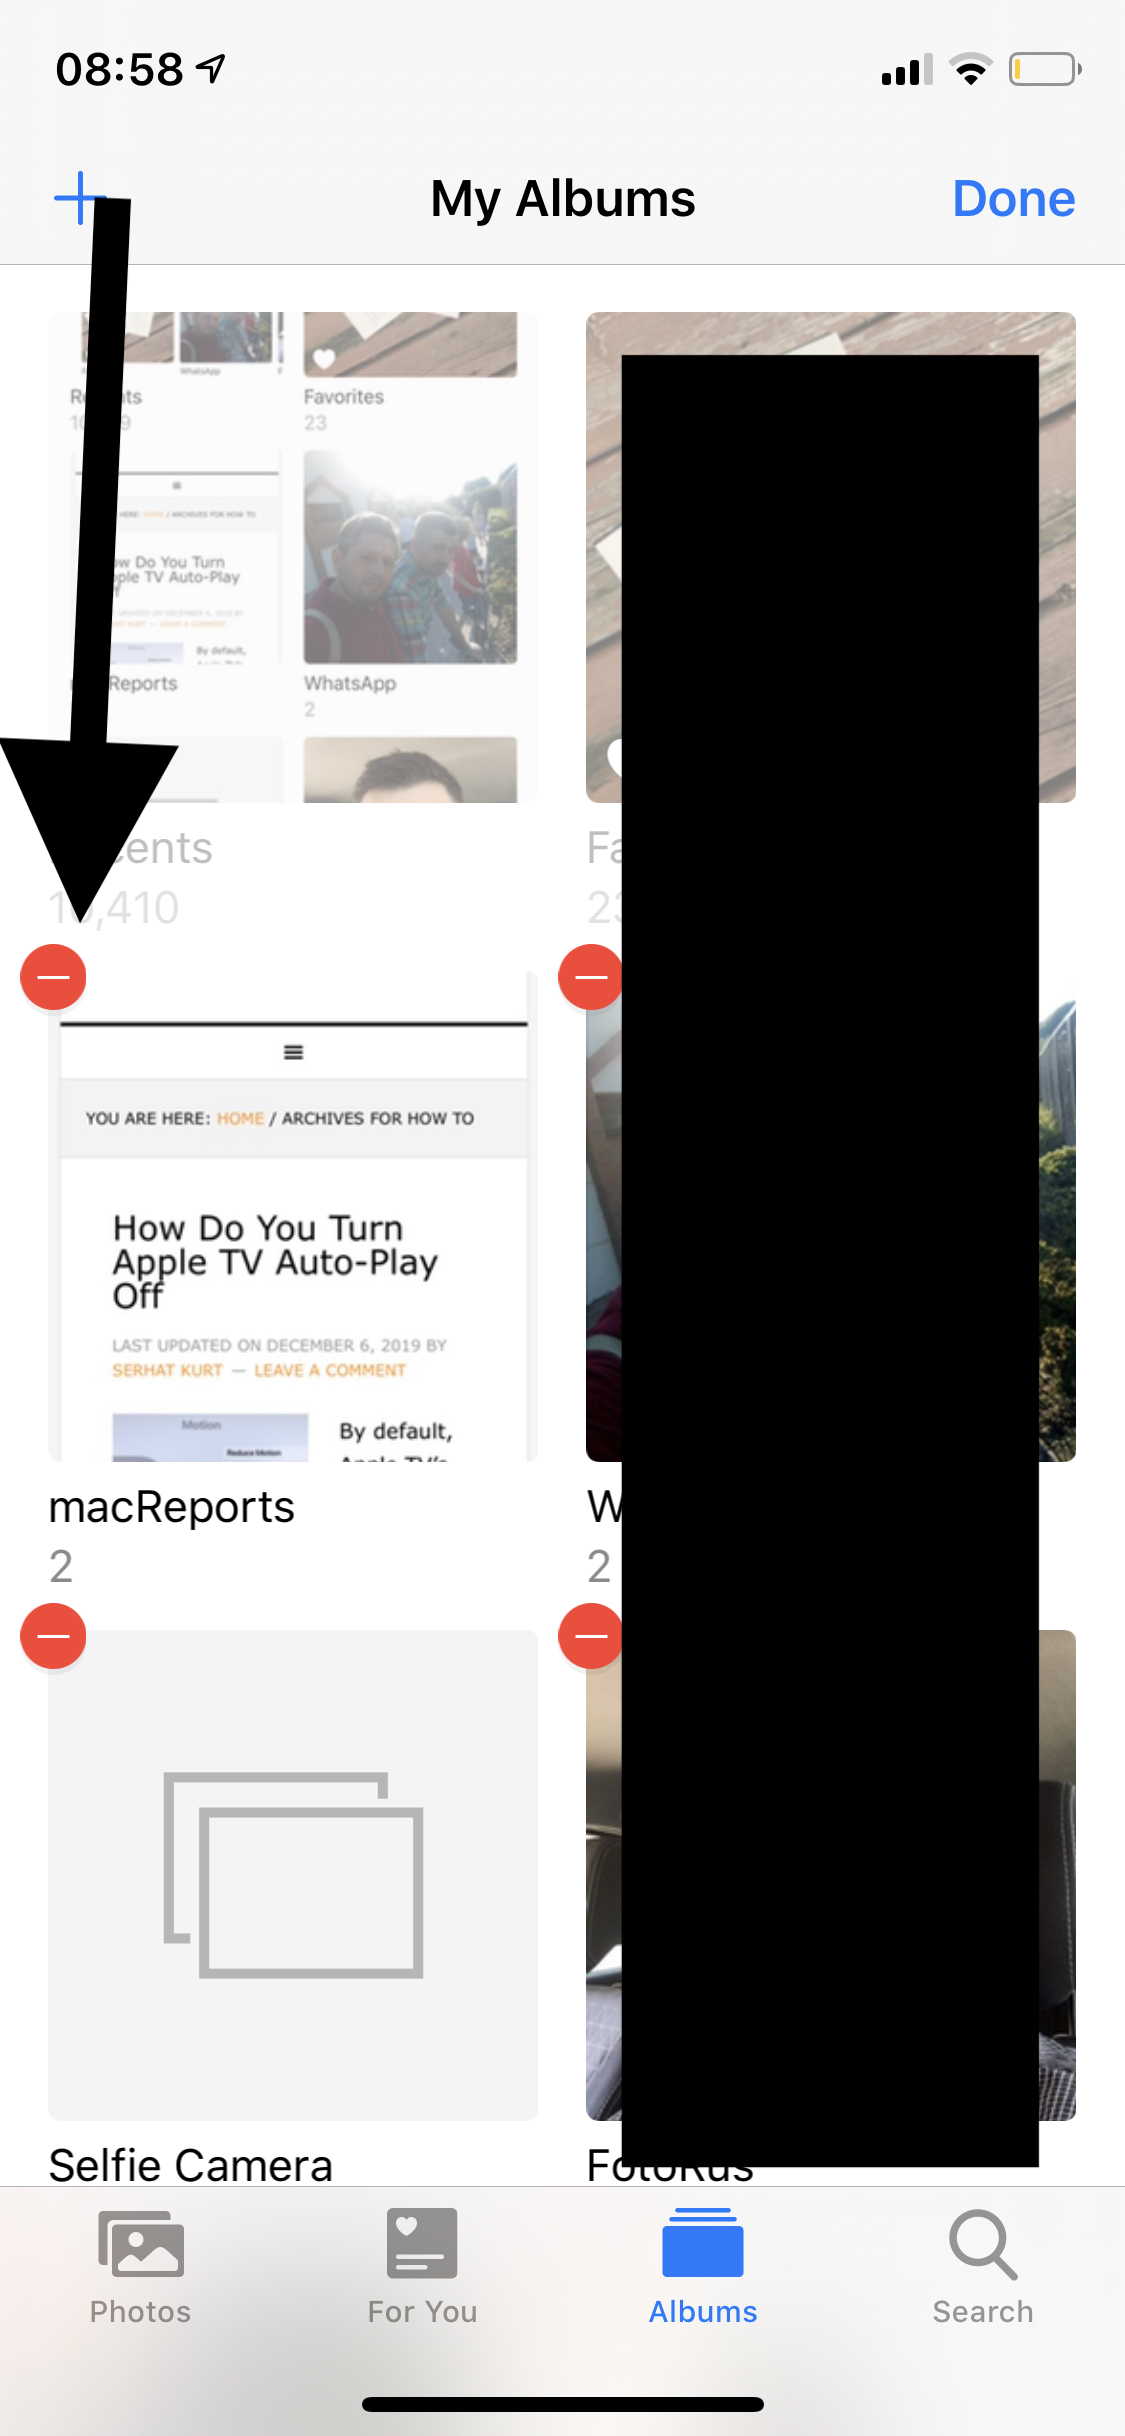 How To Delete Photo Albums On iPhone and Mac - macReports